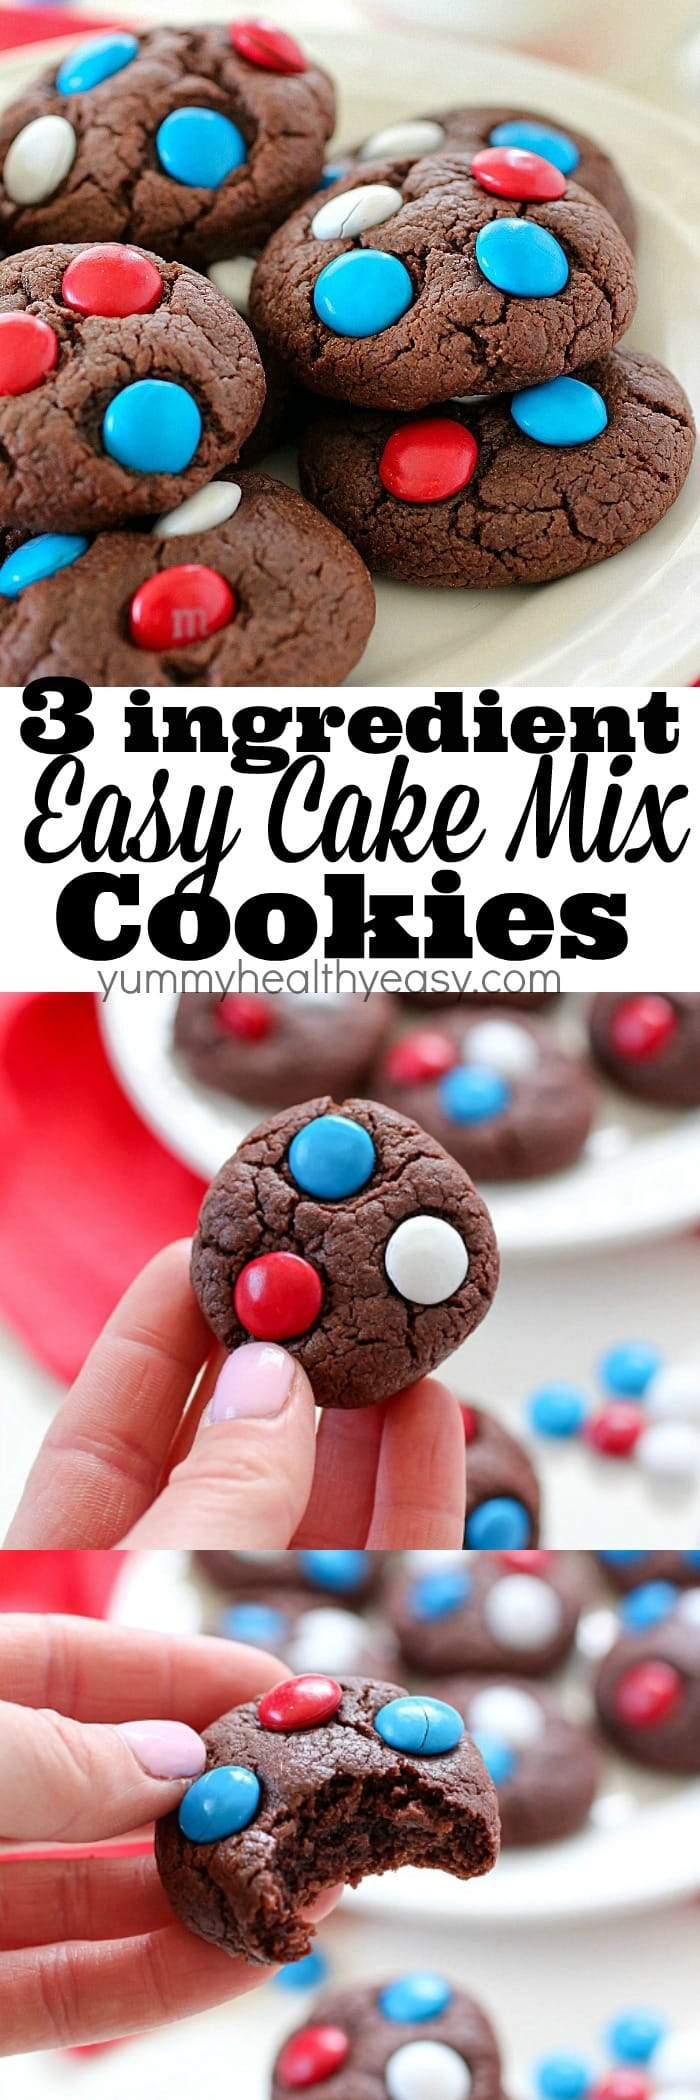 3-Ingredient Easy Cake Mix Cookies - Yummy Healthy Easy